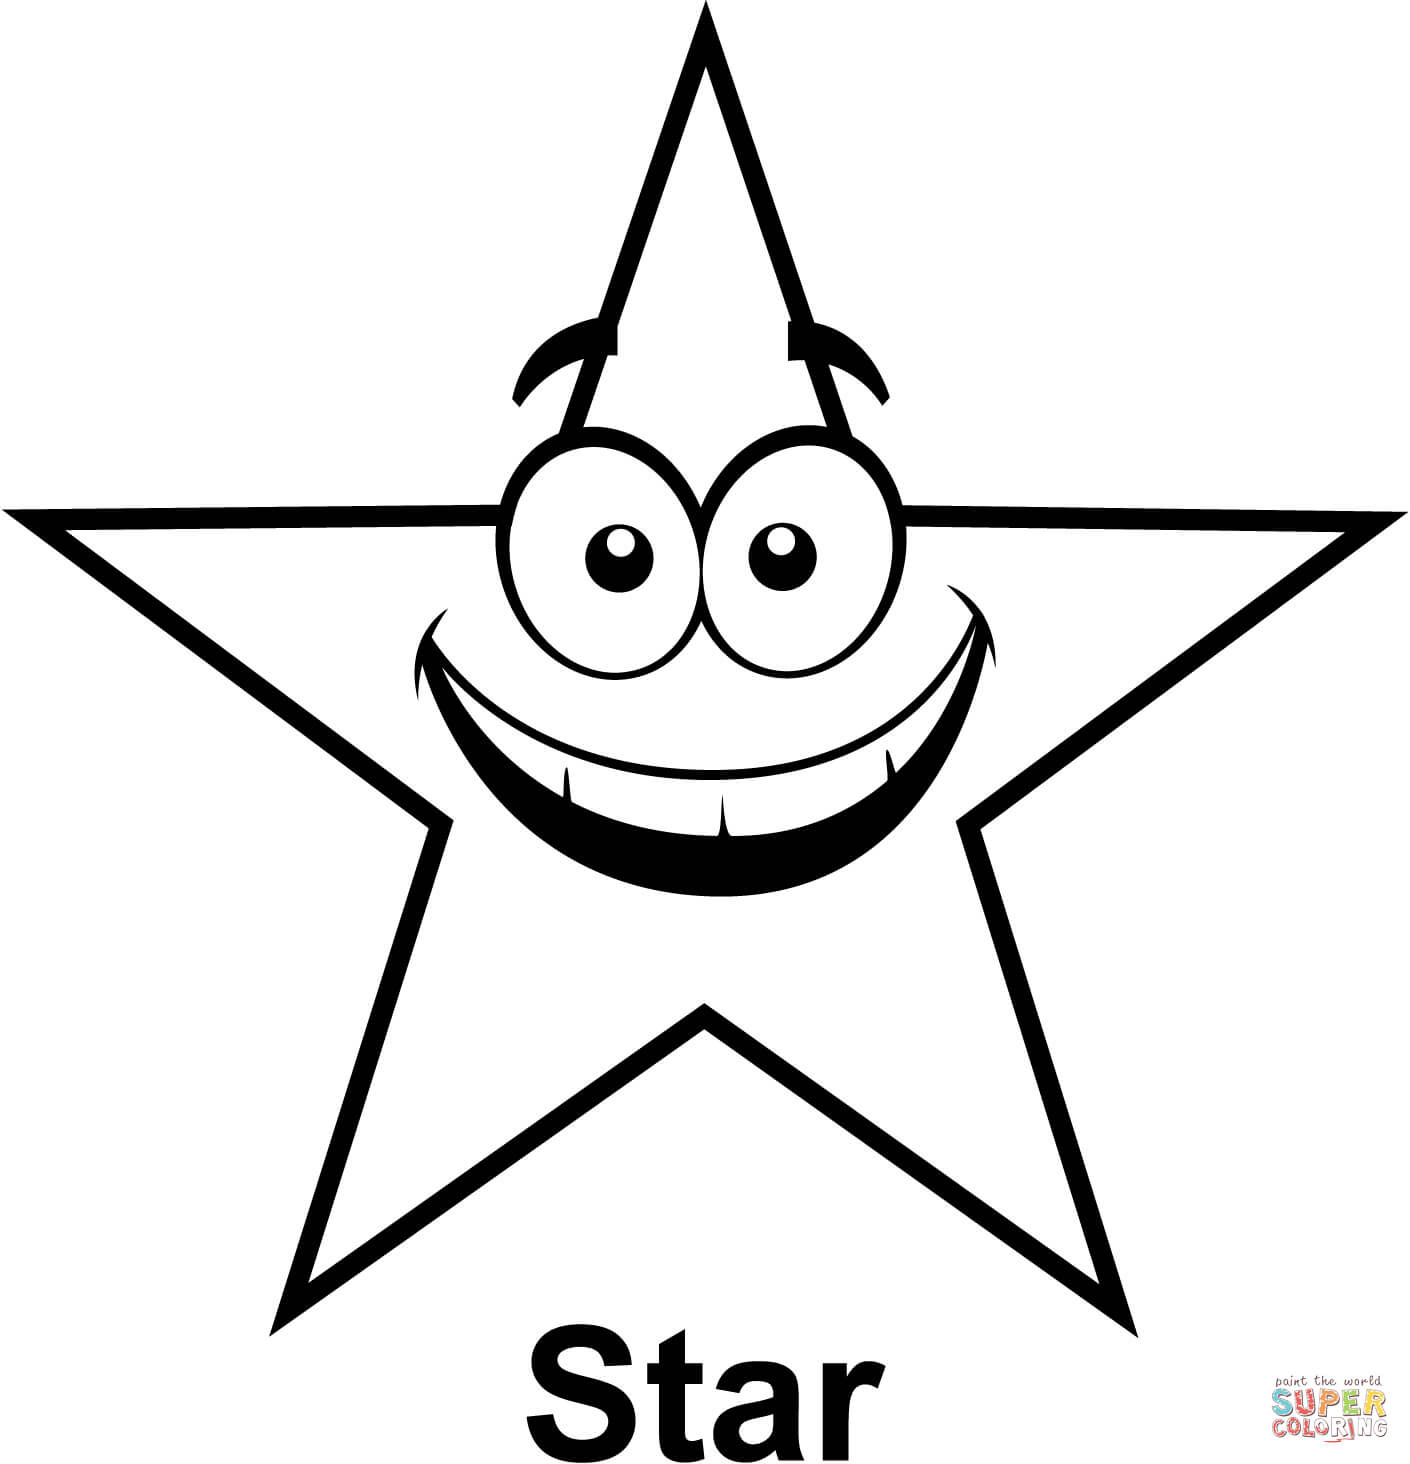 coloring star images free printable star coloring pages for kids images star coloring